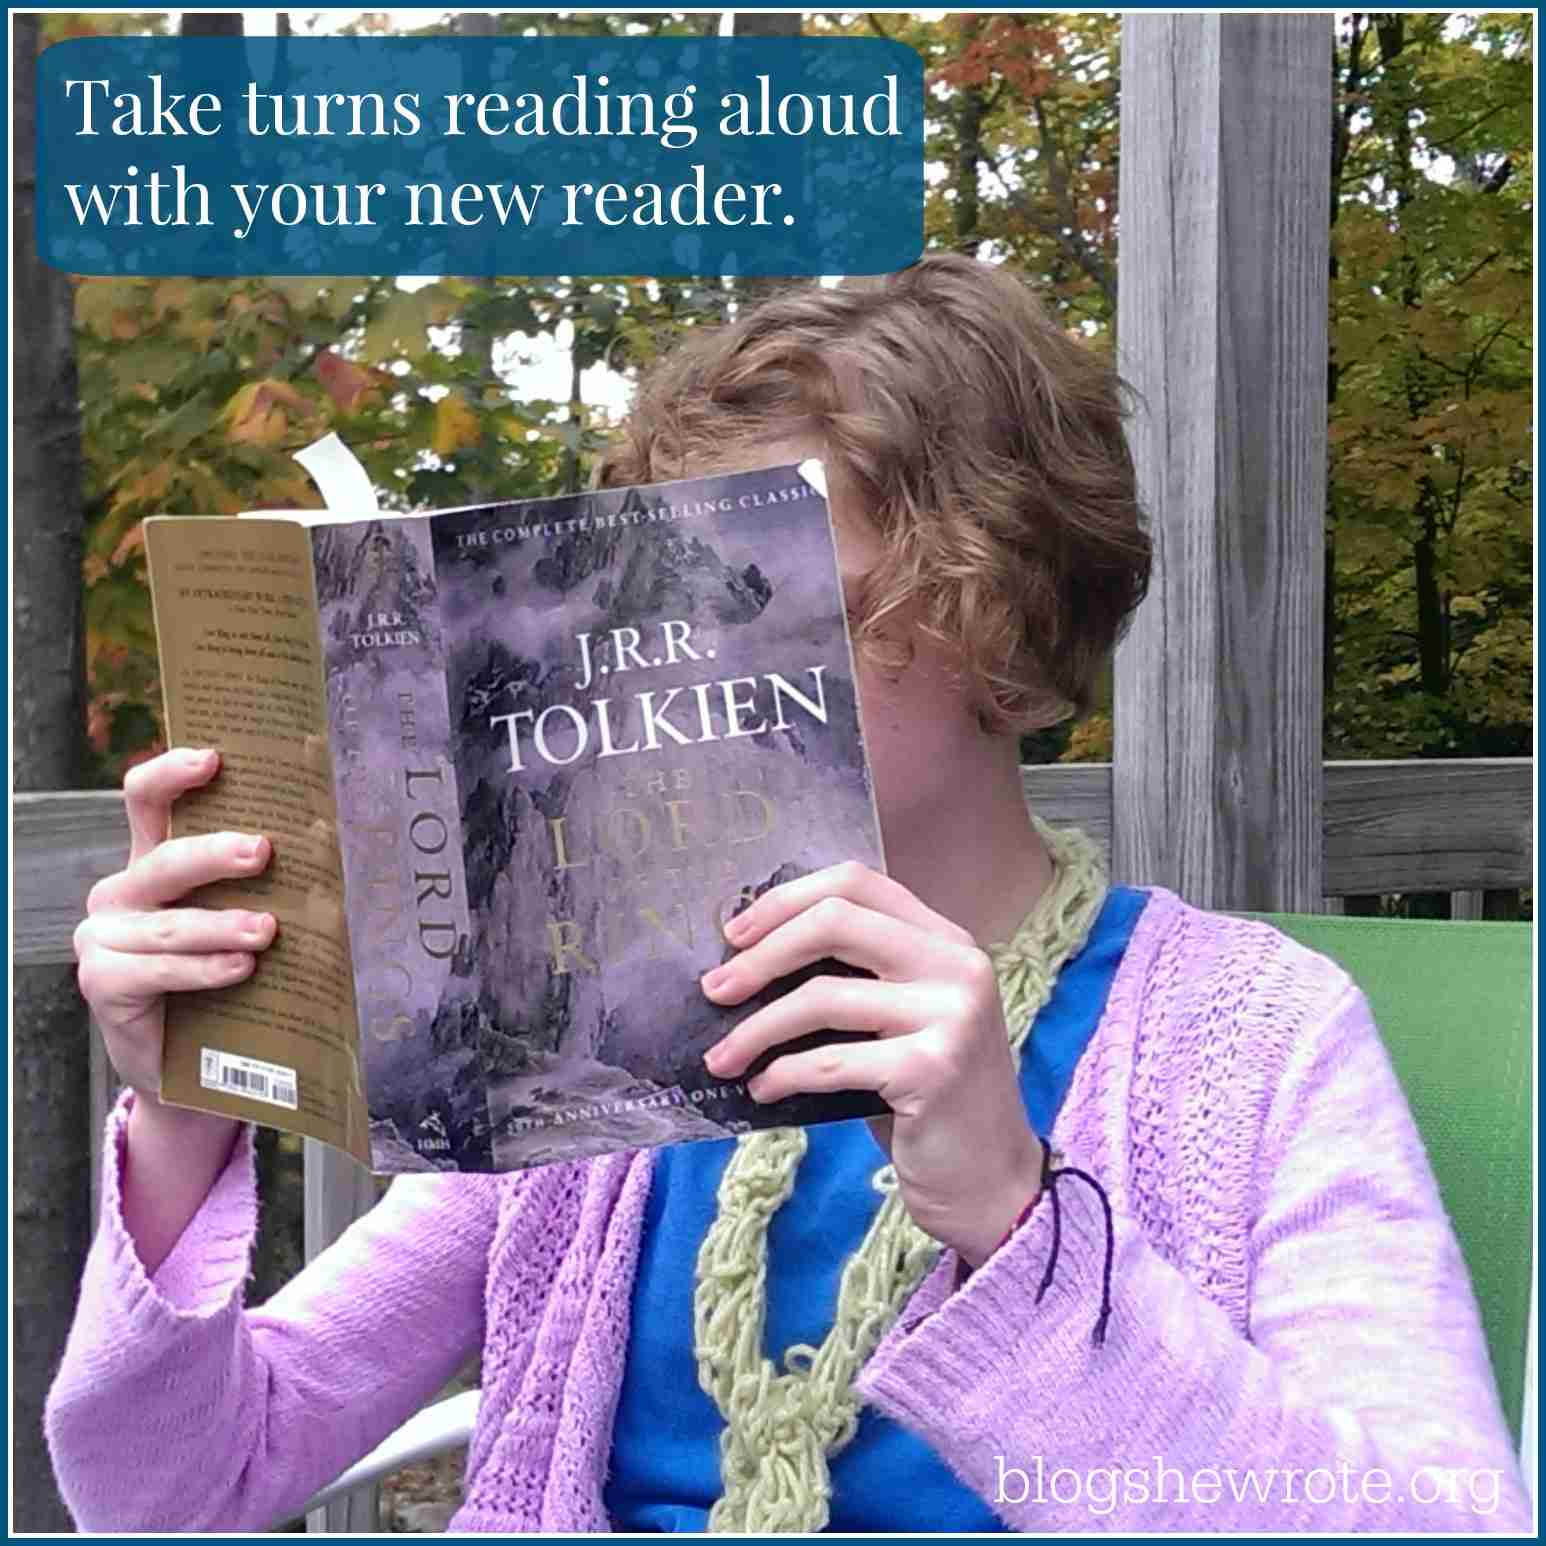 Blog, She Wrote: How to Turn an Emergent Reader into a Super Reader